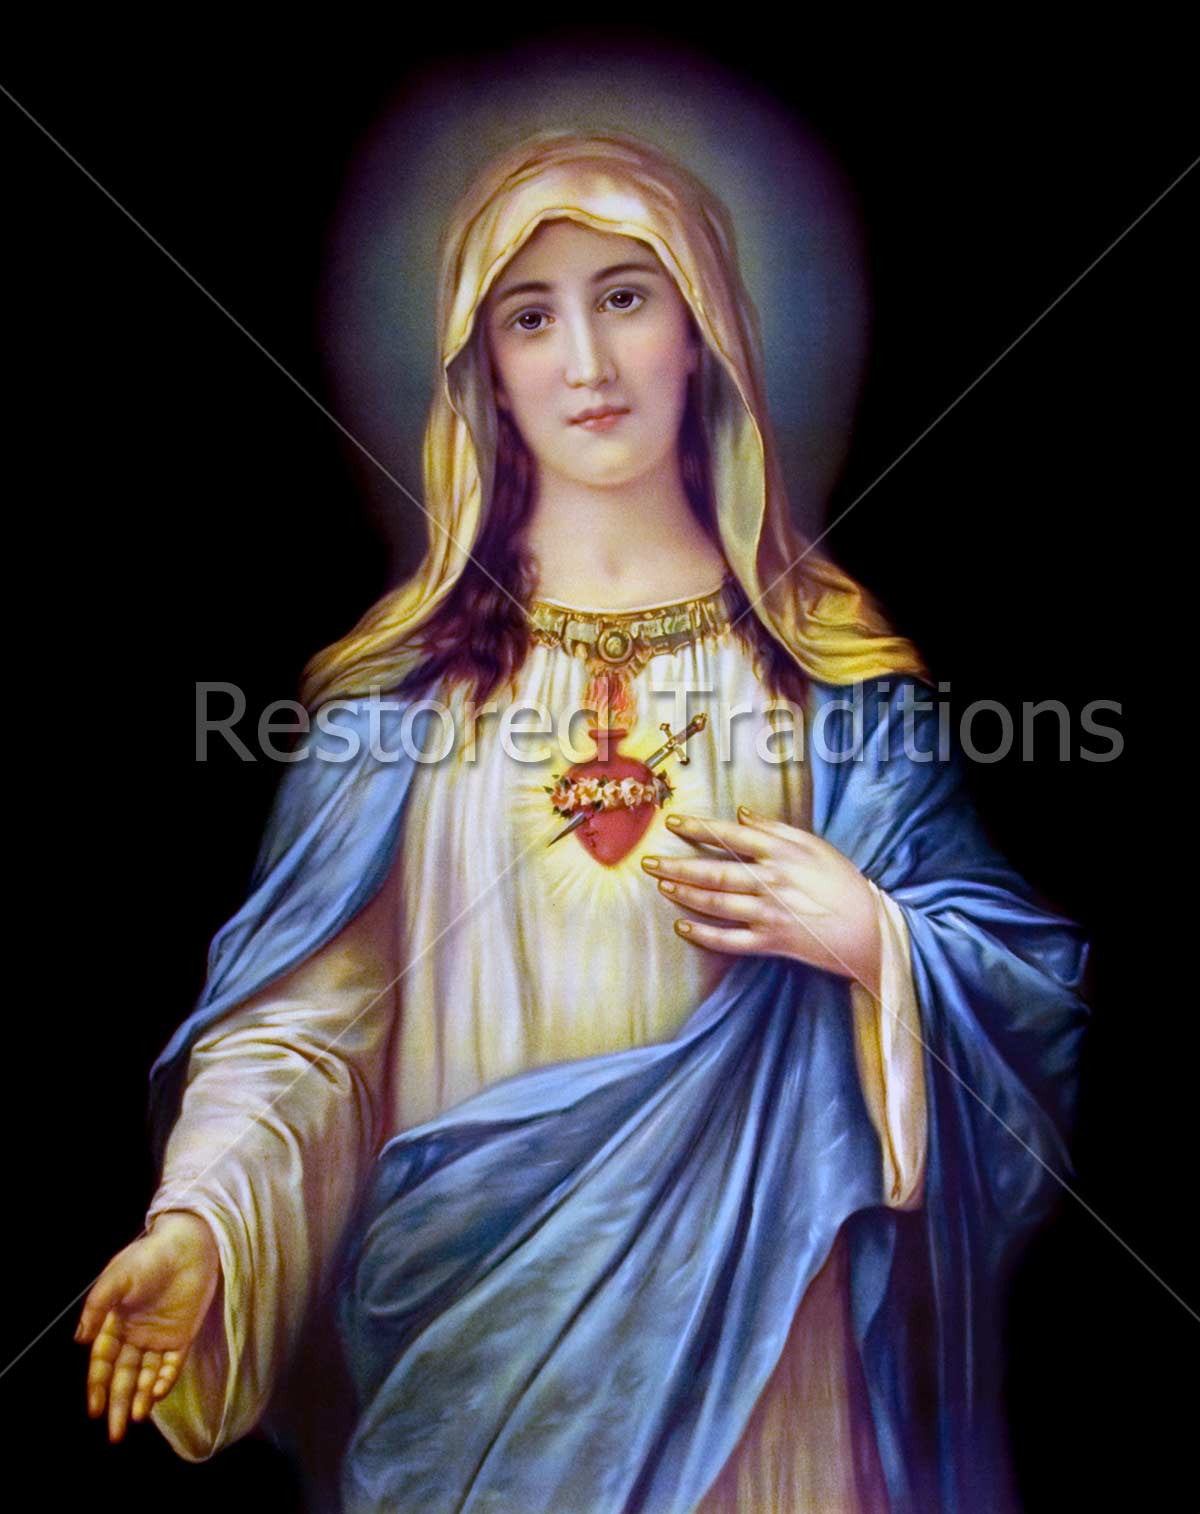 top 150 catholic art images royalty free restored traditions